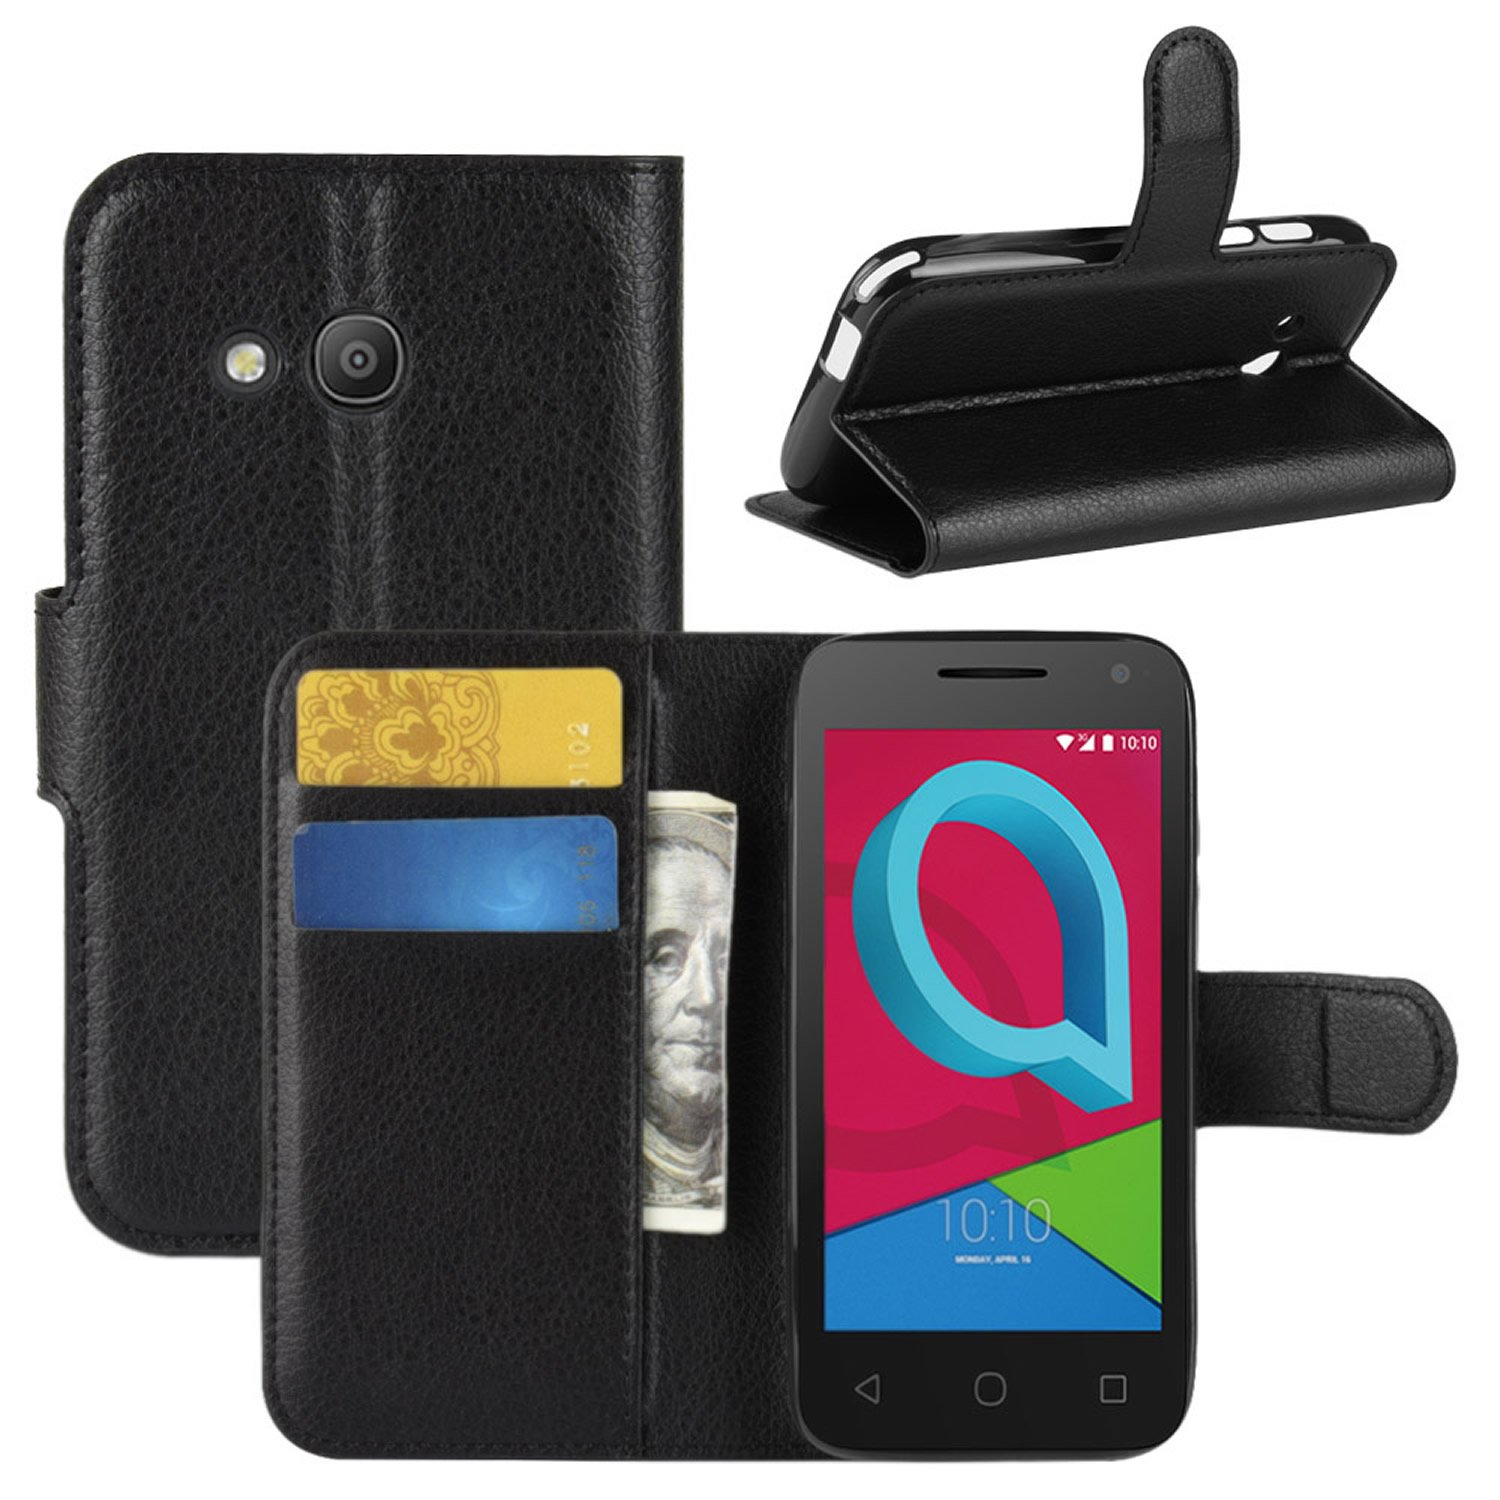 HualuBro Alcatel U3 3G Case, Premium PU Leather Wallet Flip Phone Protective Case Cover with Card Slots for Alcatel U3 3G Smartphone (Black)